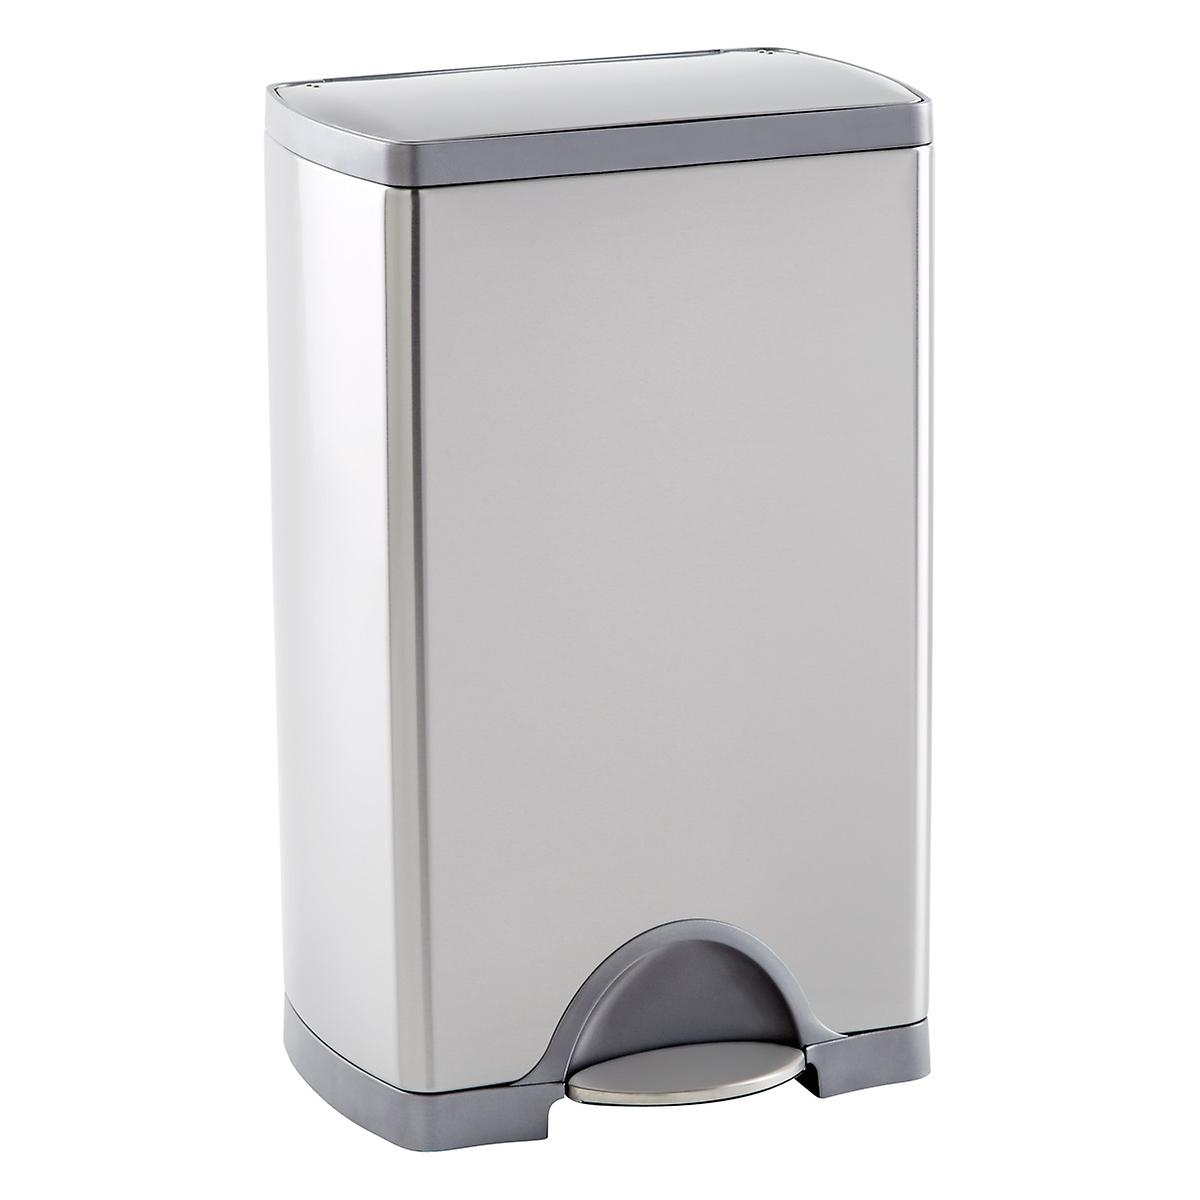 simplehuman Stainless Steel 10 gal. Rectangular Step Trash Can